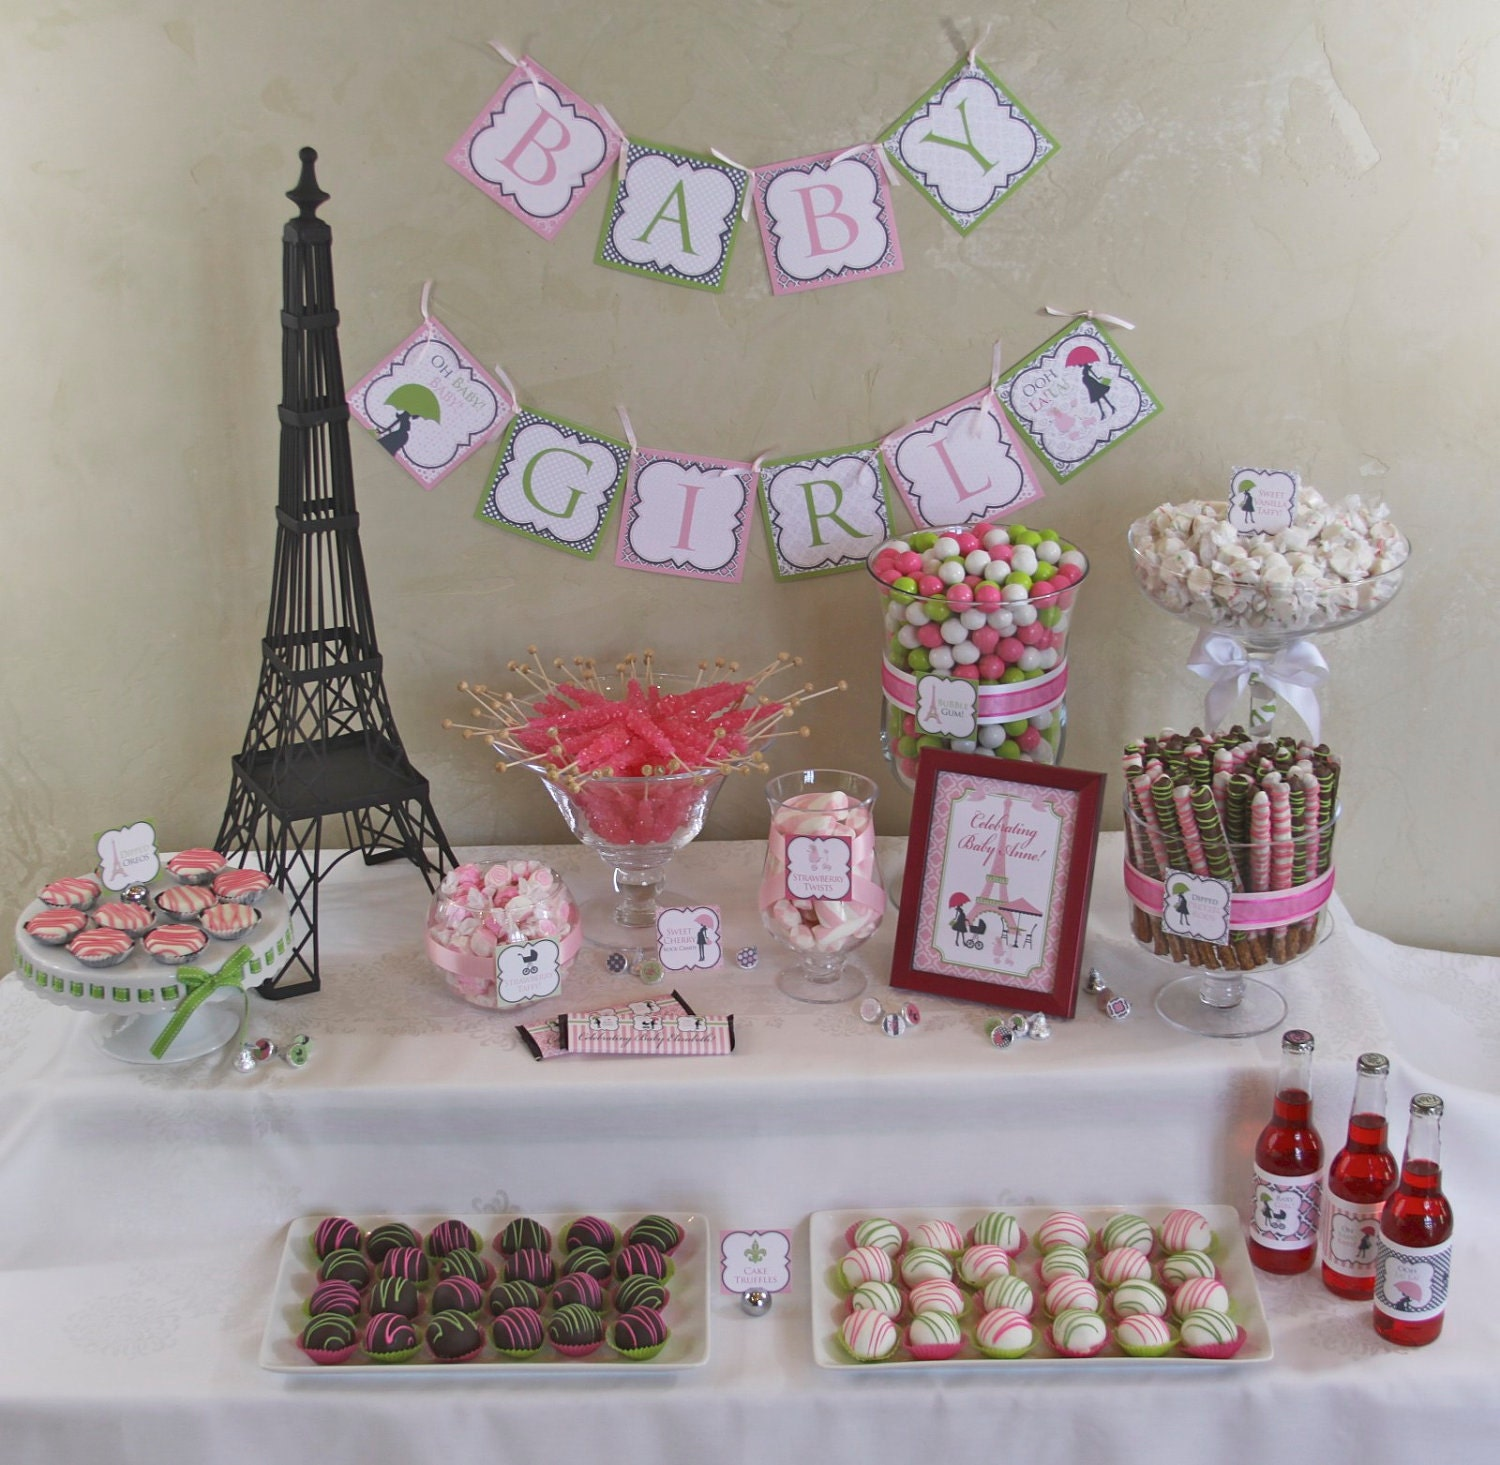 Paris Baby Shower Cake: Chic PARIS Baby Shower DIY Party Printables By